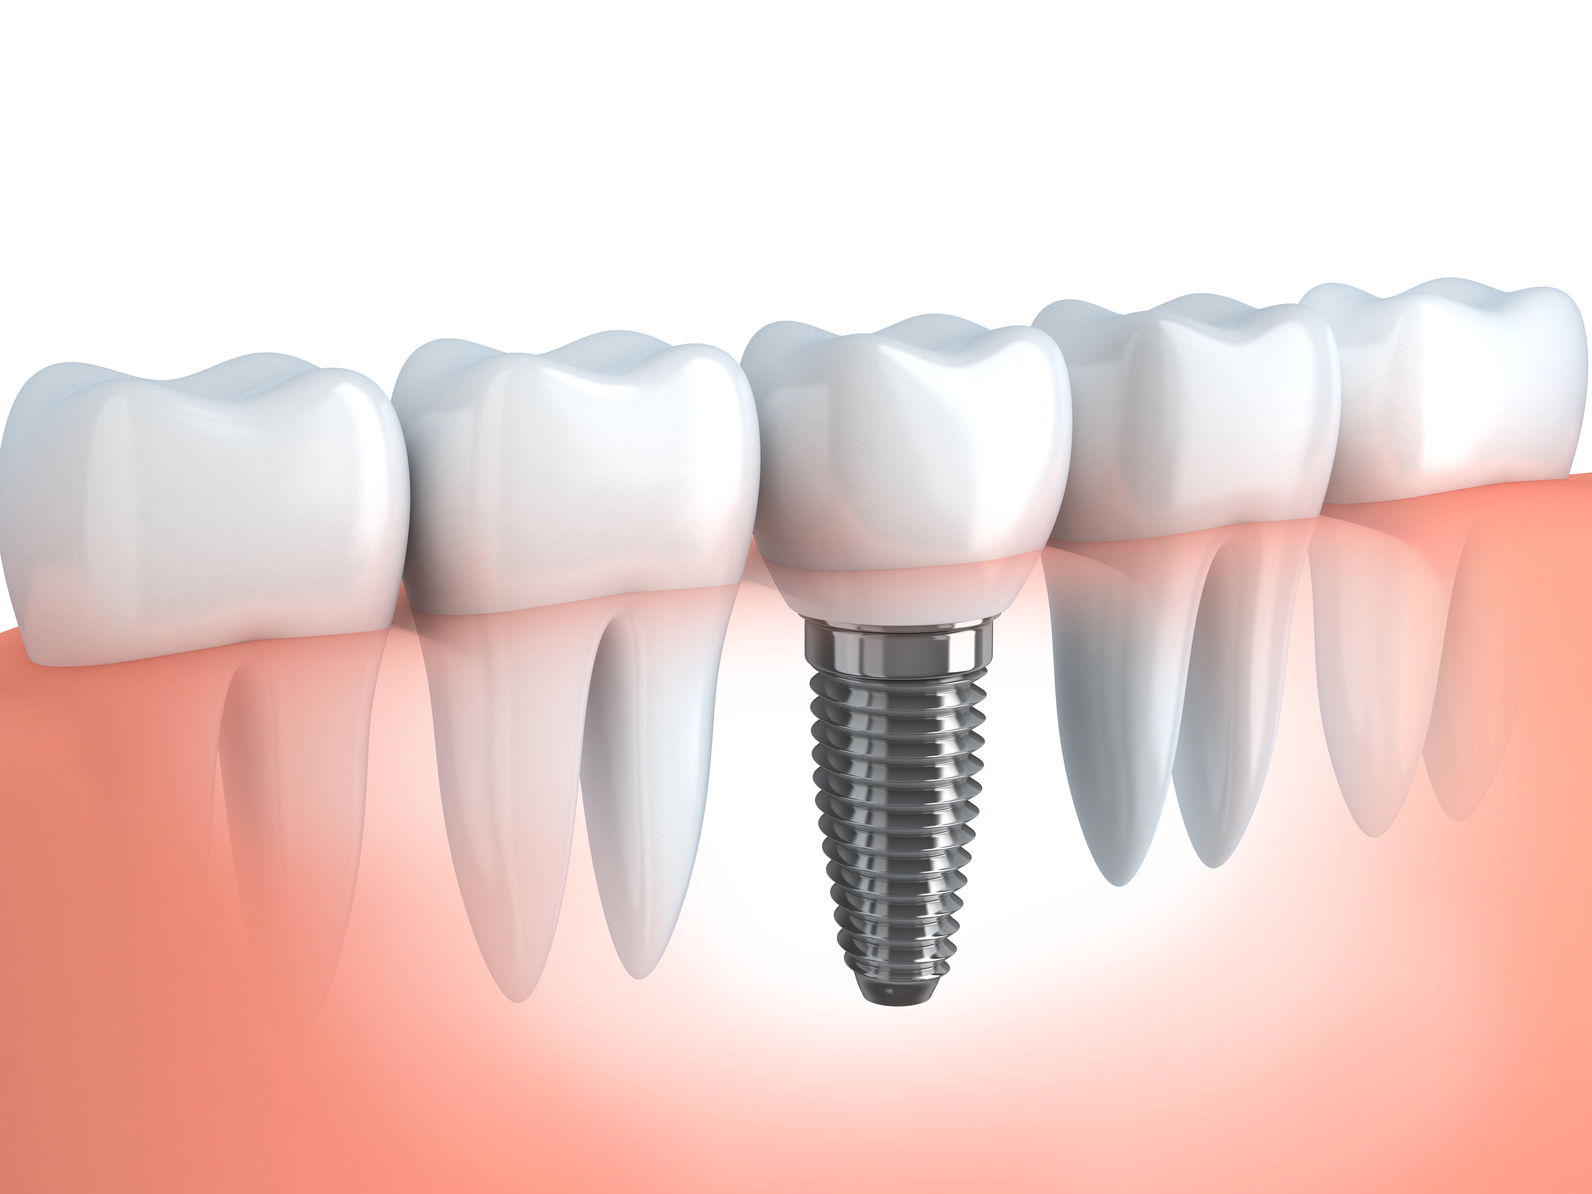 Implant dentaire : Un implant pour qui ?